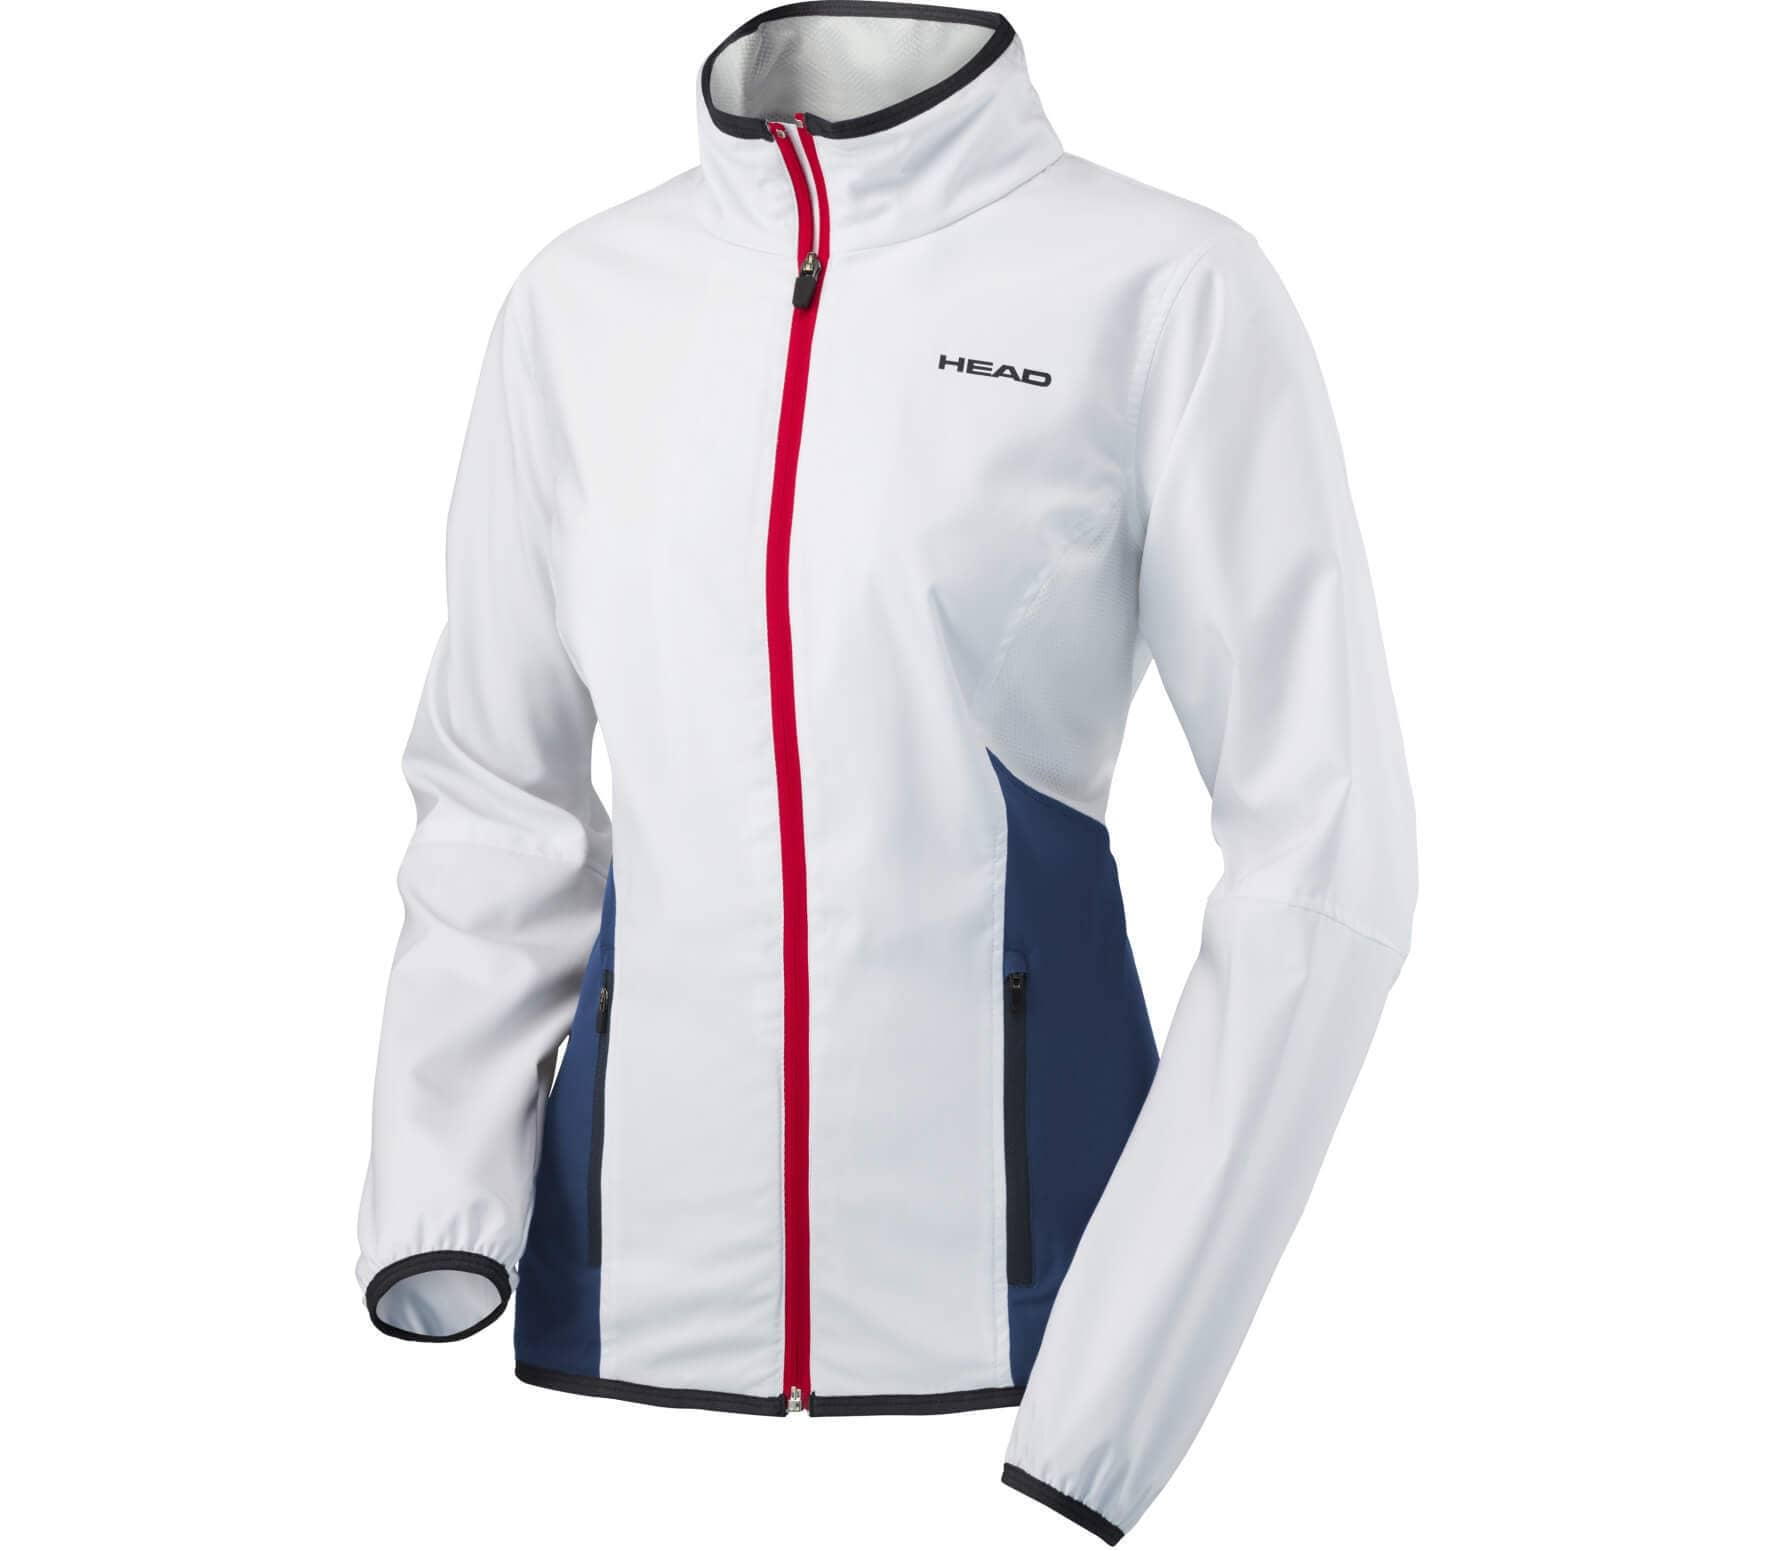 giacca donna tennis